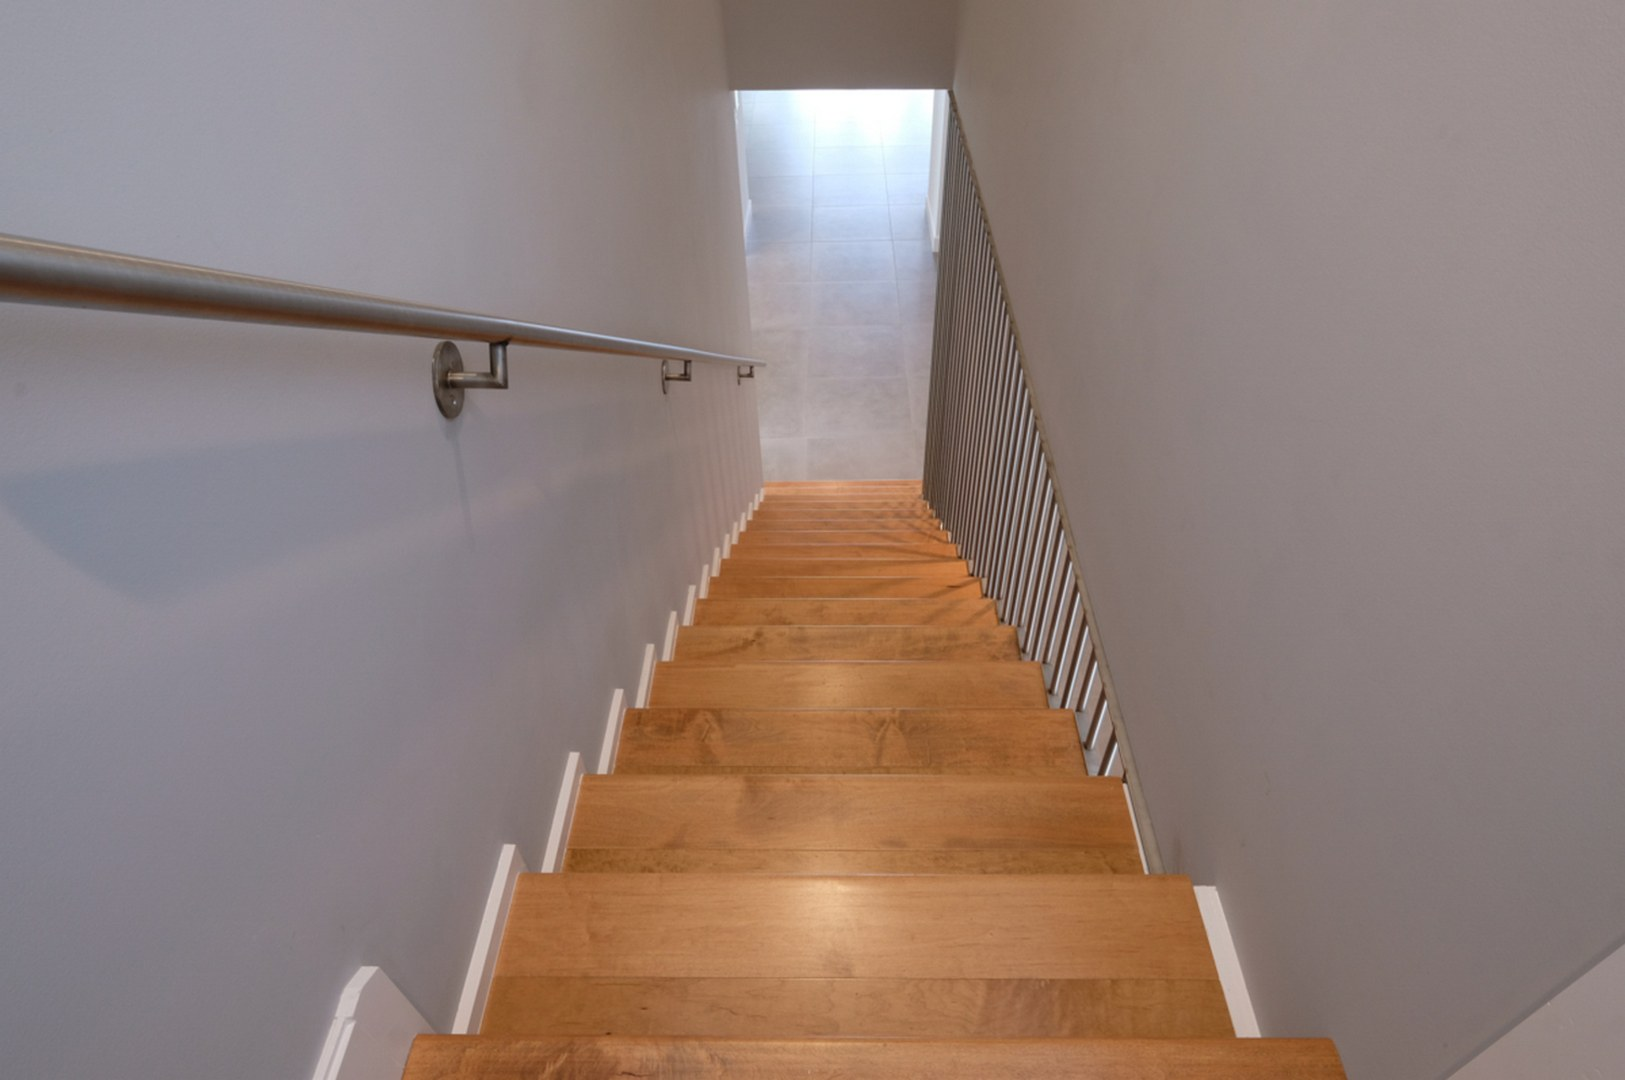 Stair Case to Second Floor Master Suite